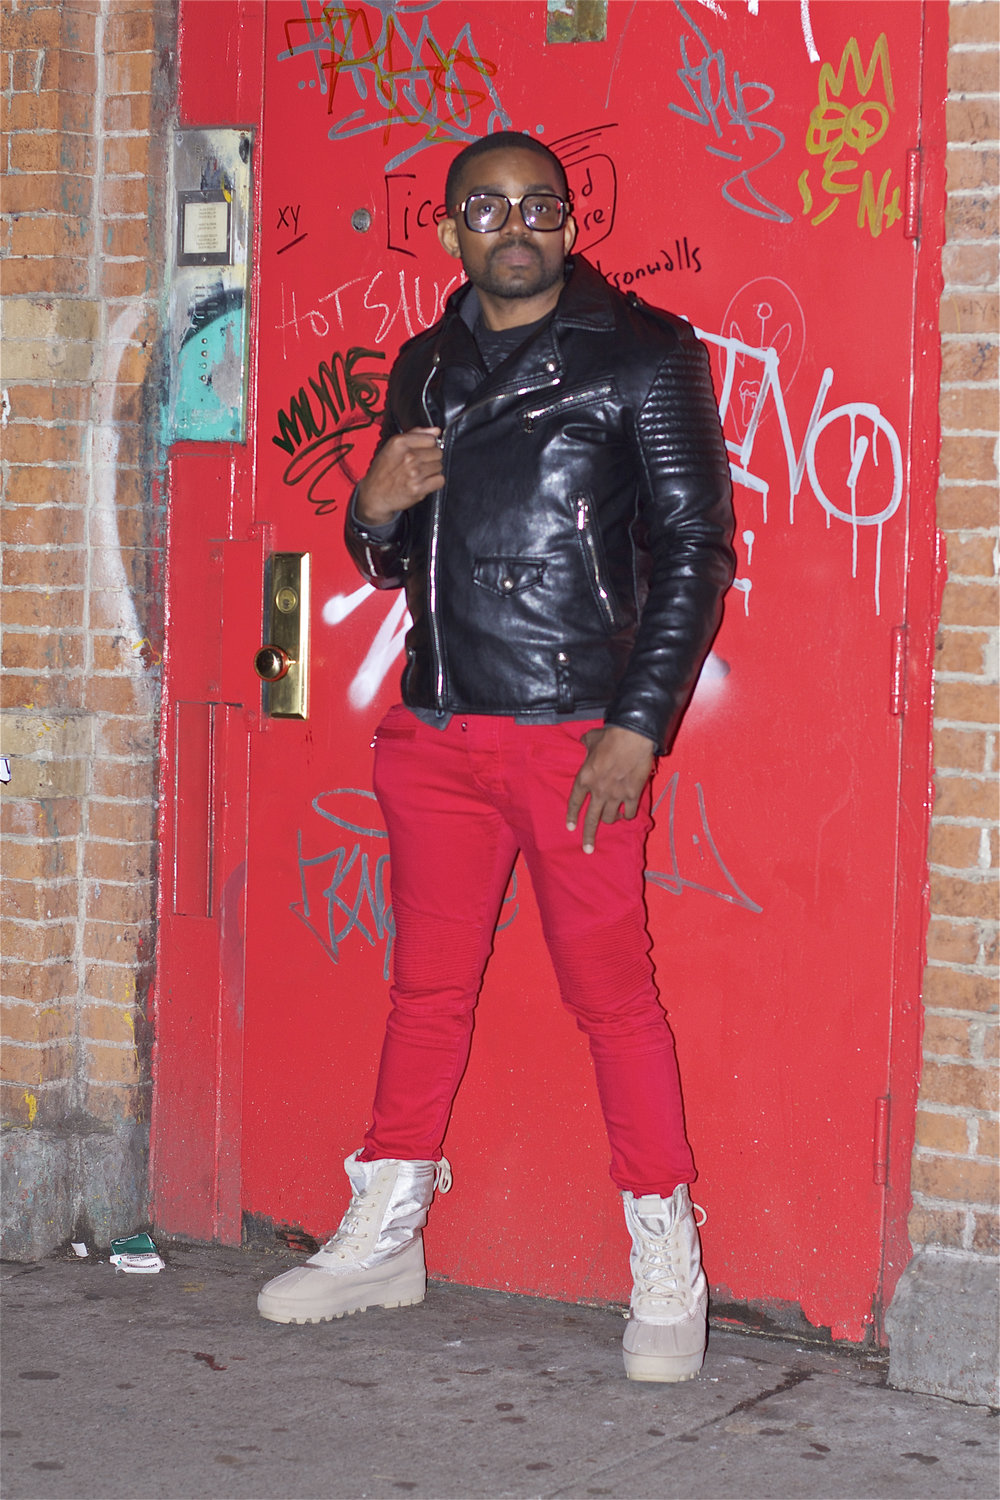 Raheem-red-door.jpg